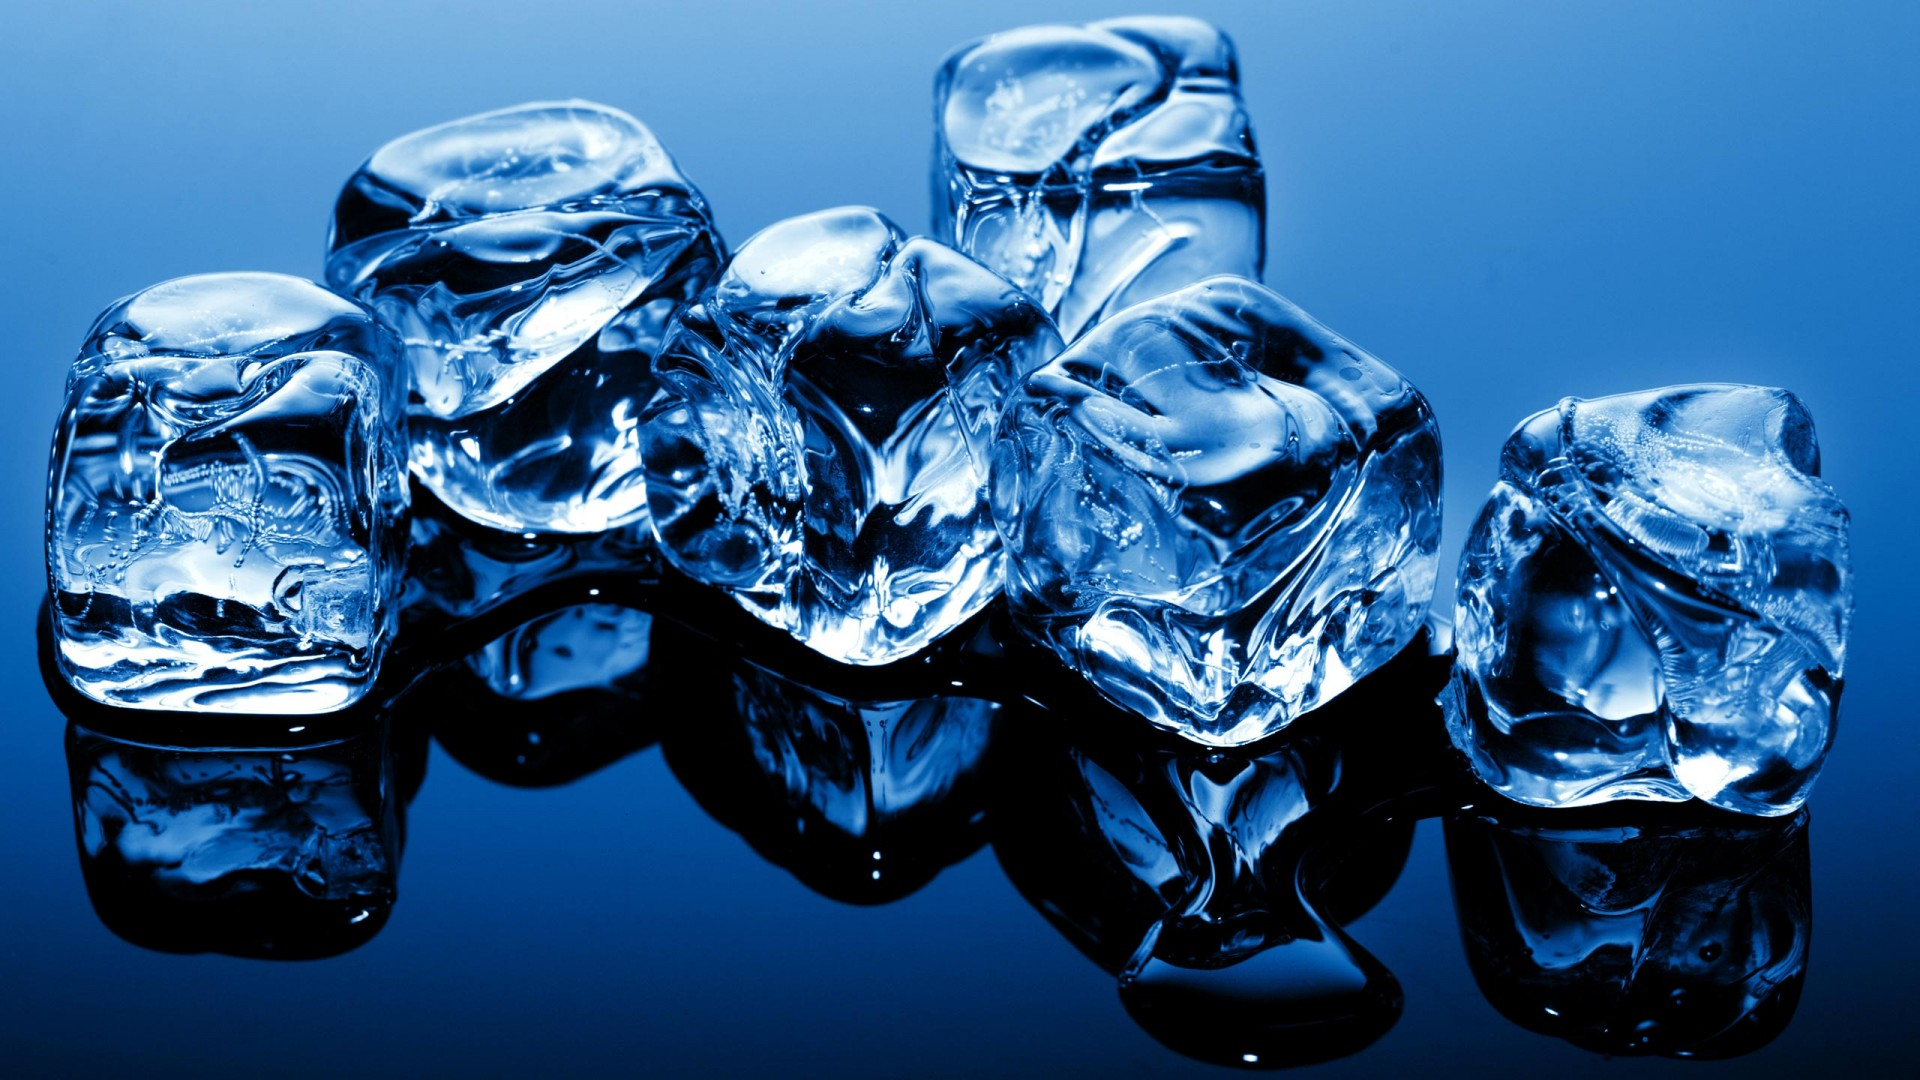 33 Blue Ice Cubes HD WallpaperMixHD wallpapers 635 Ice 1920x1080